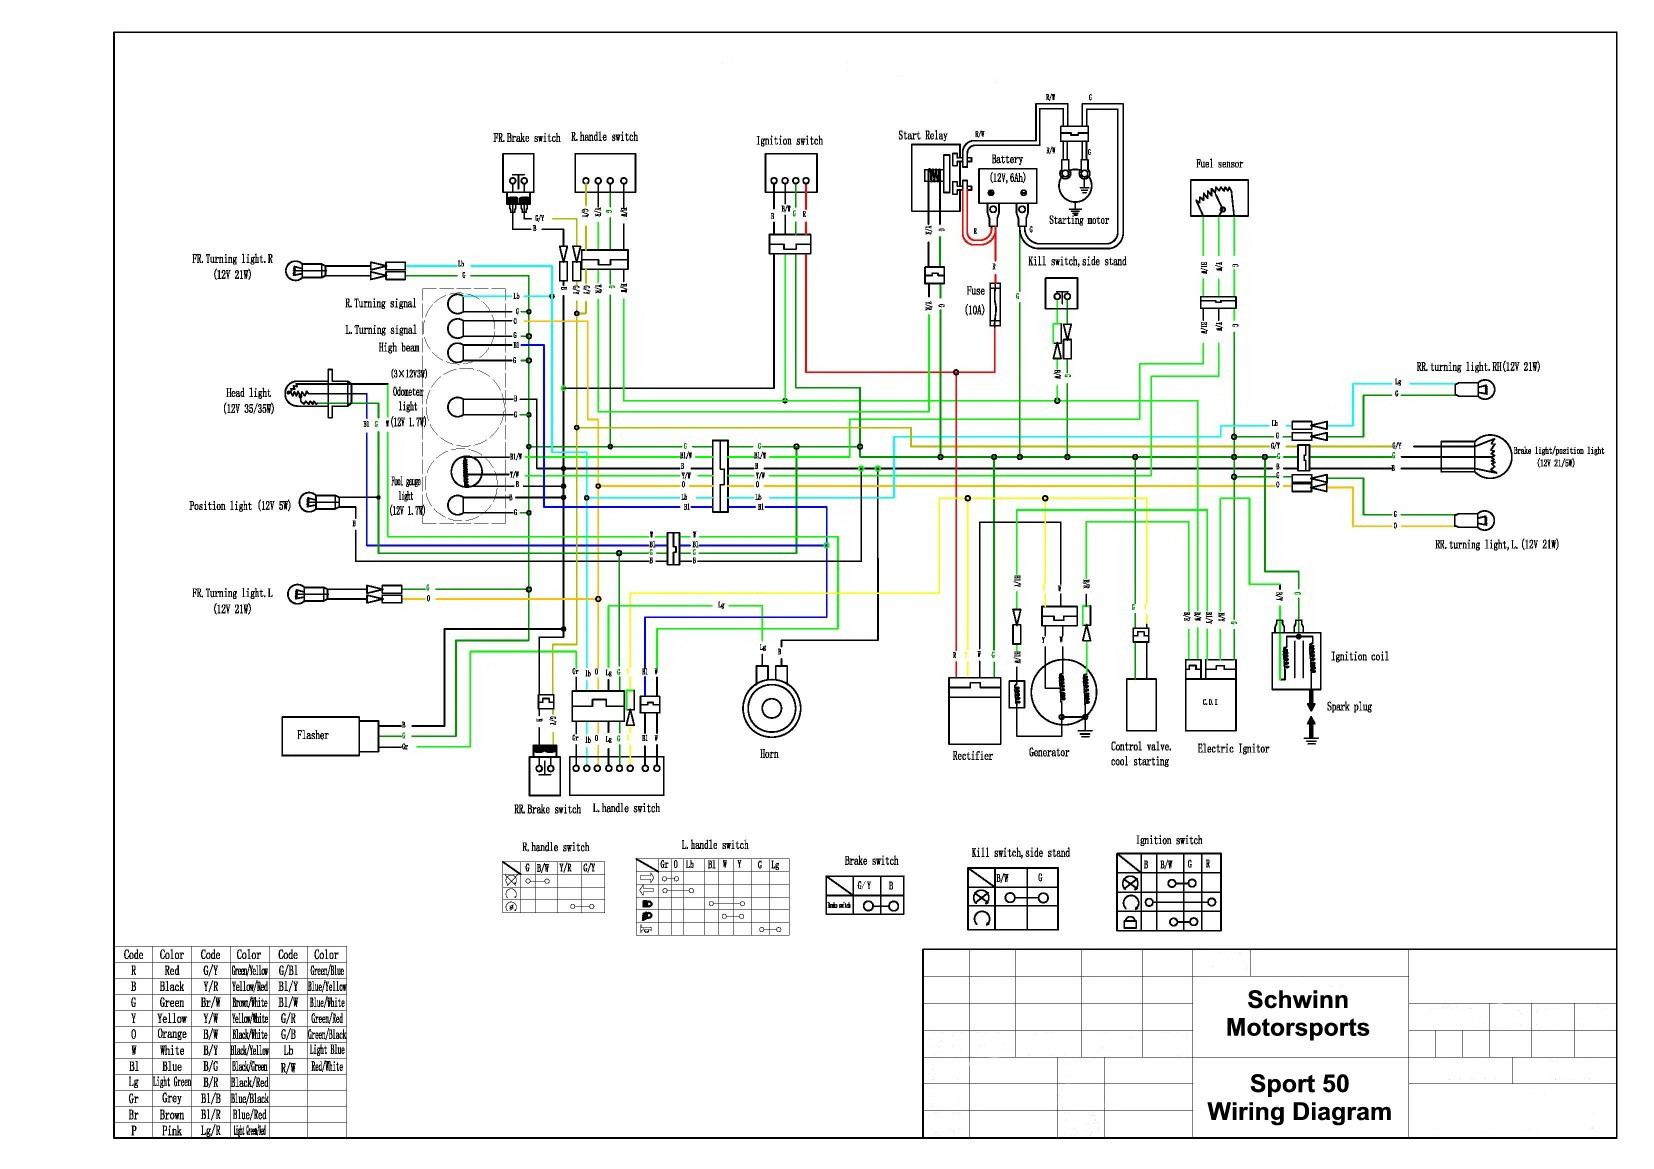 victory wiring harness wiring diagram content Victory Cross Country Dimensions